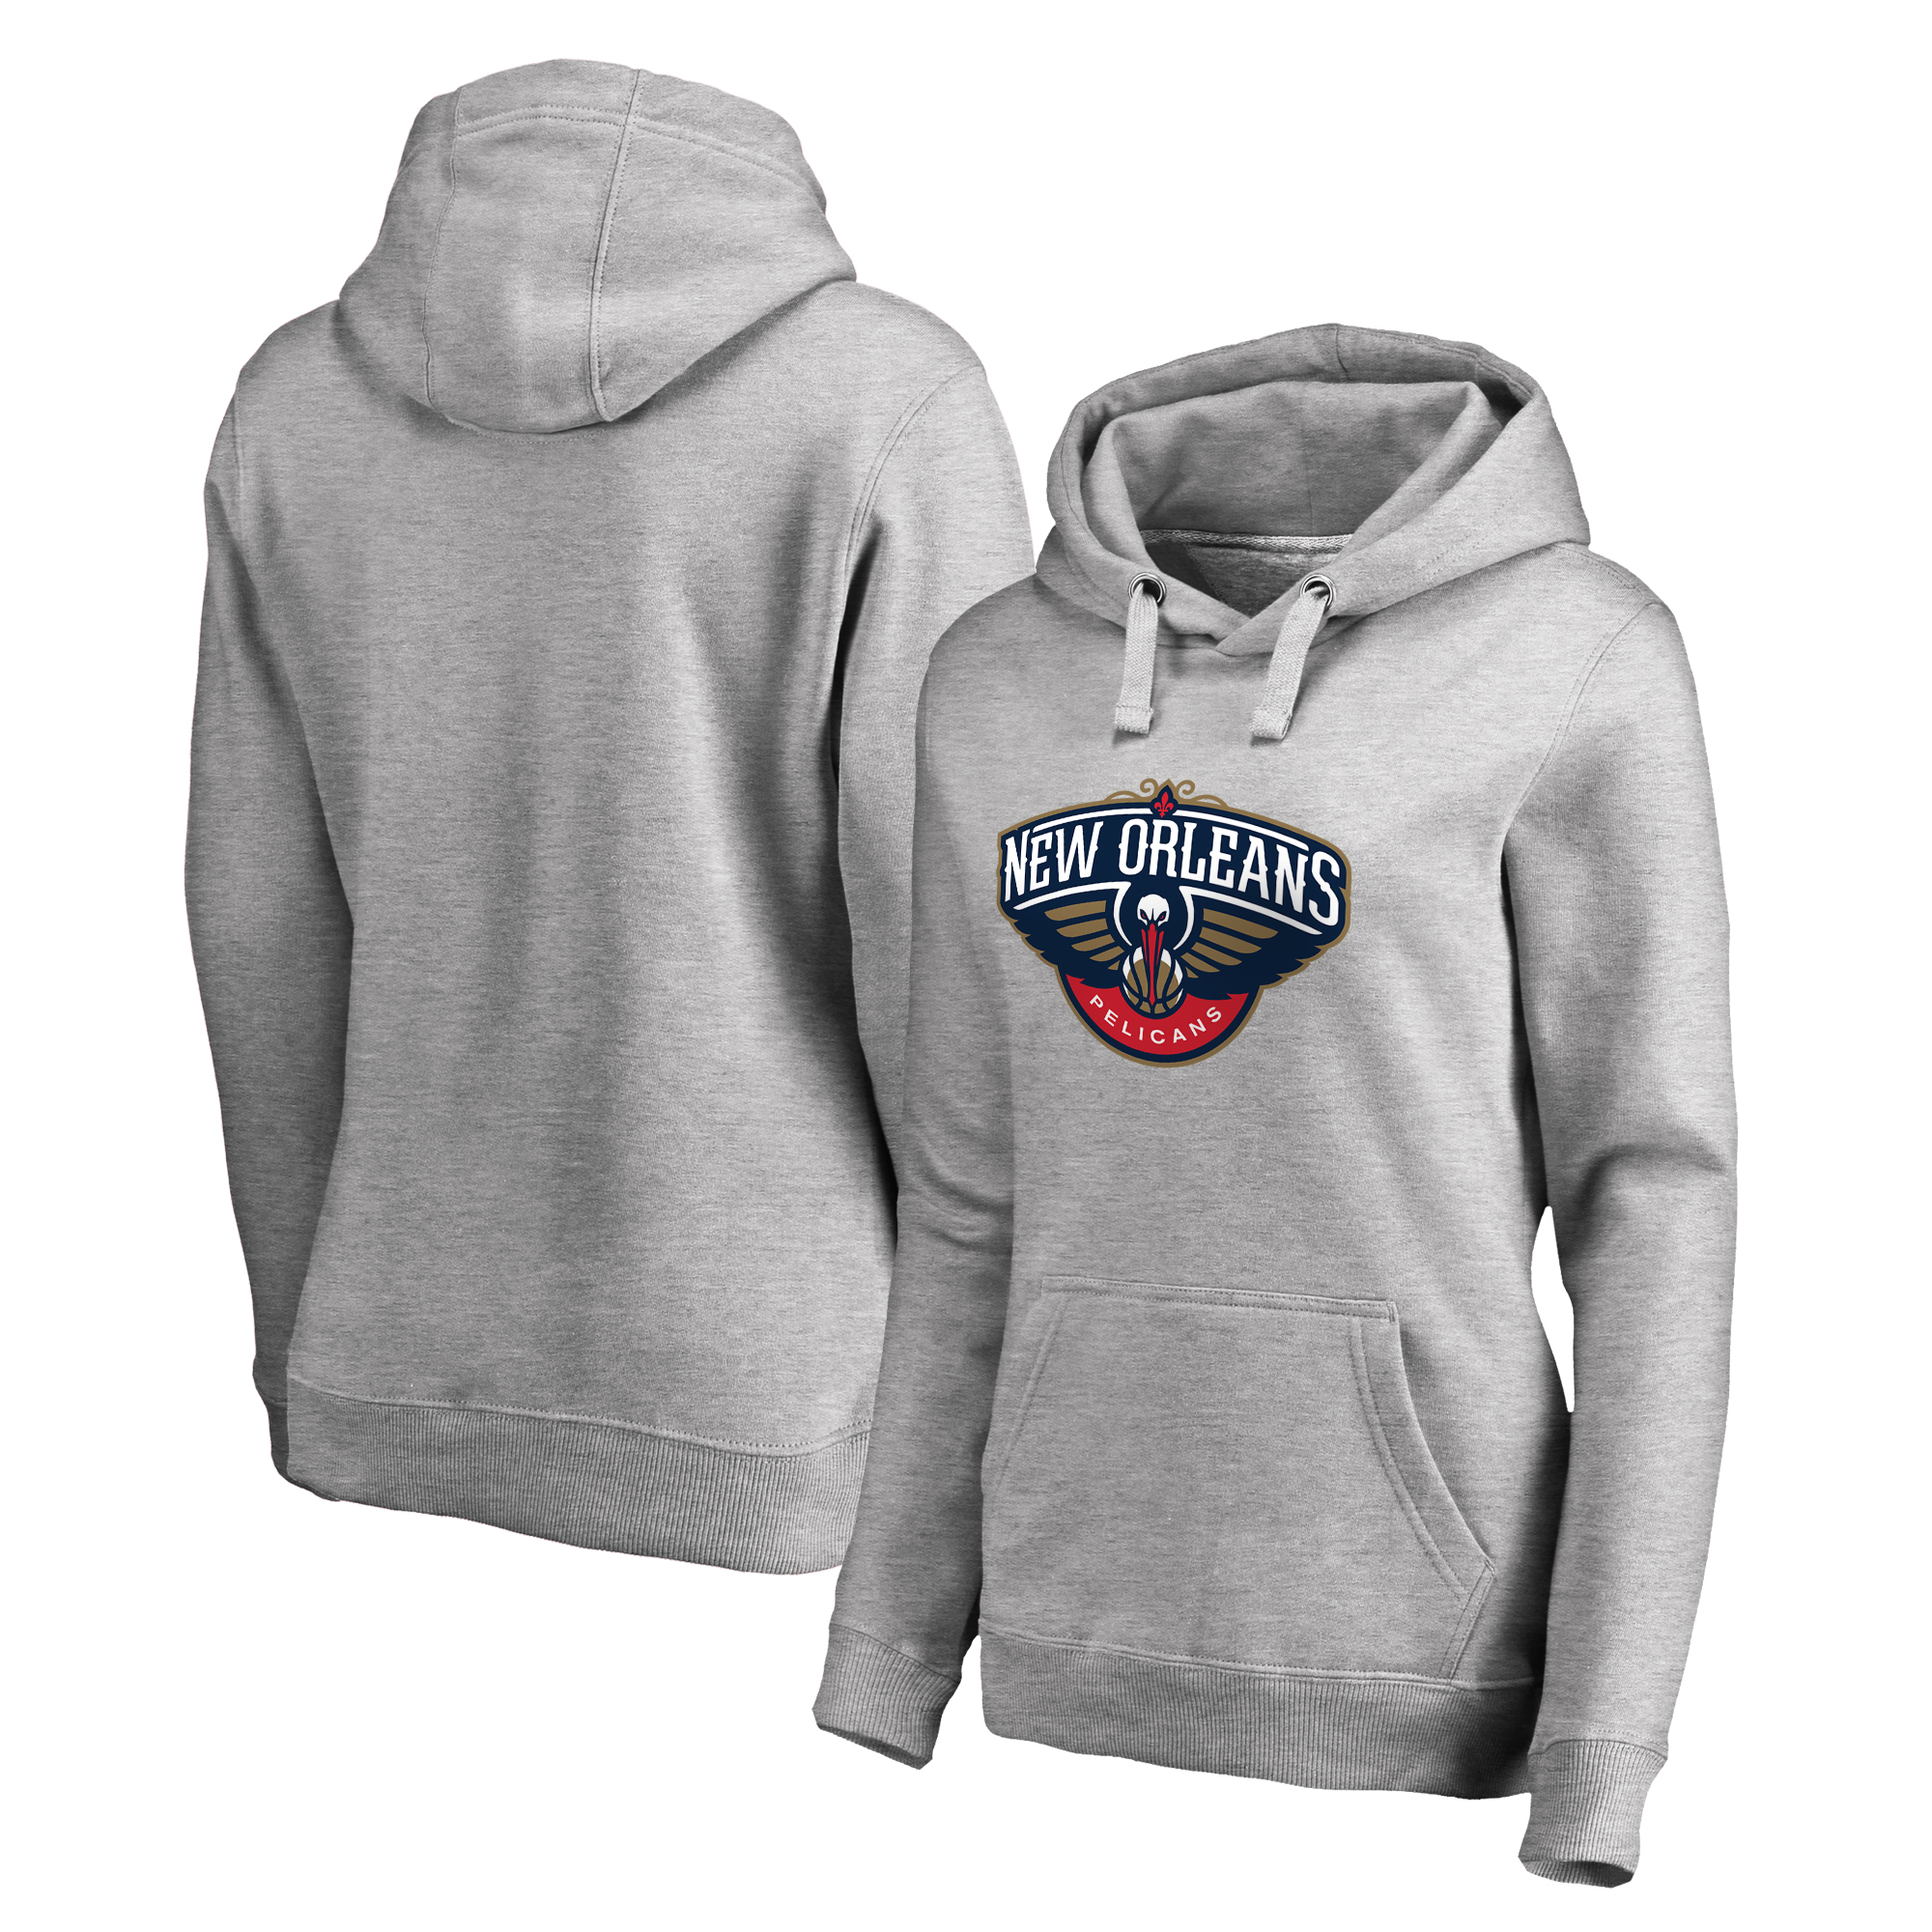 New Orleans Pelicans Fanatics Branded Women's Primary Logo Pullover Hoodie - Ash